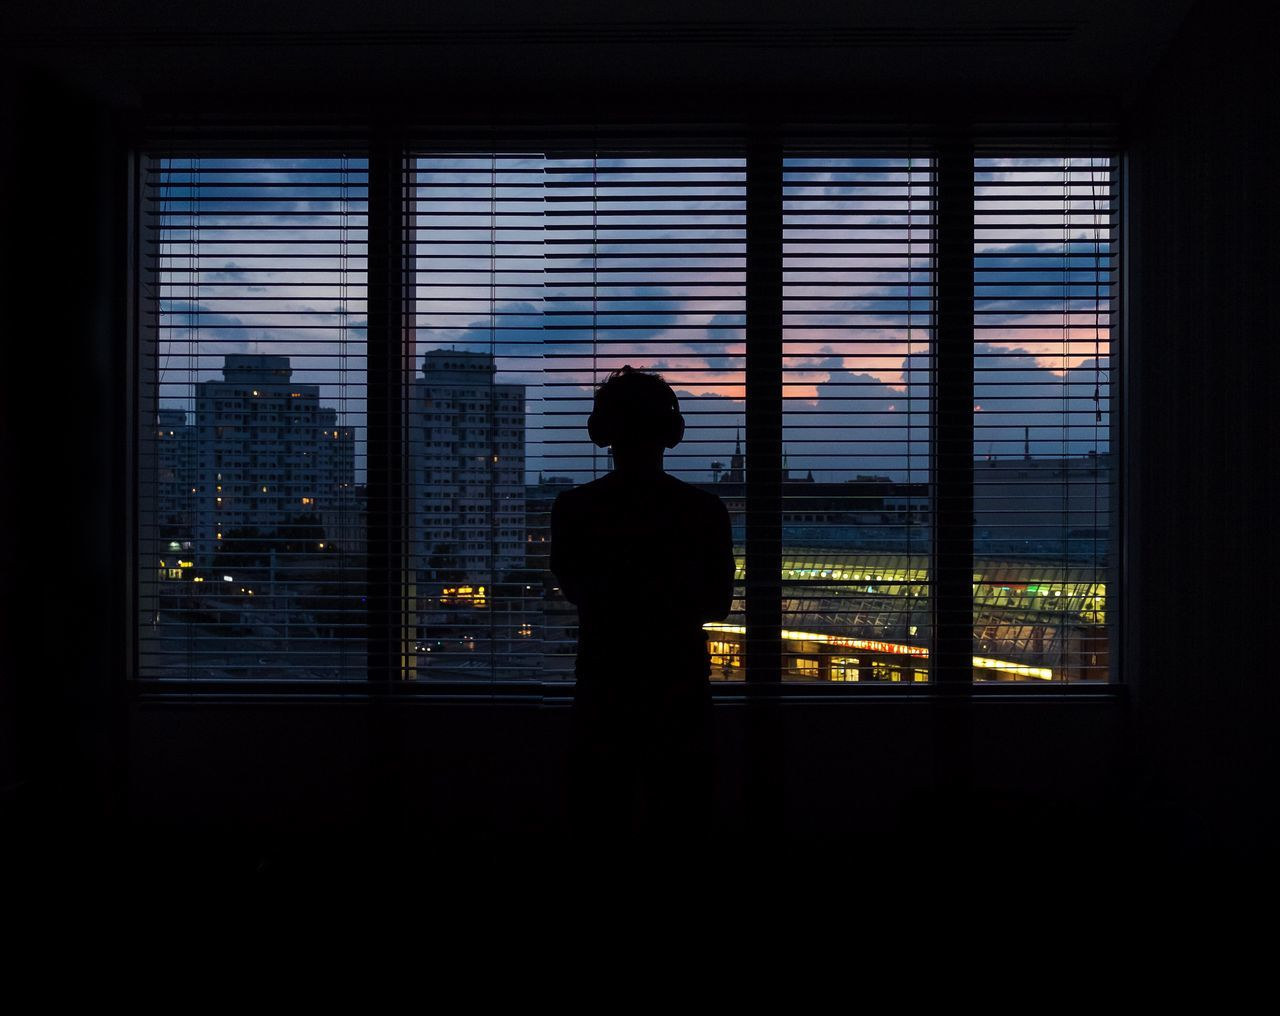 window, silhouette, indoors, rear view, skyscraper, cityscape, looking through window, real people, one person, looking at view, sky, men, city, standing, sunset, lifestyles, architecture, day, urban skyline, people